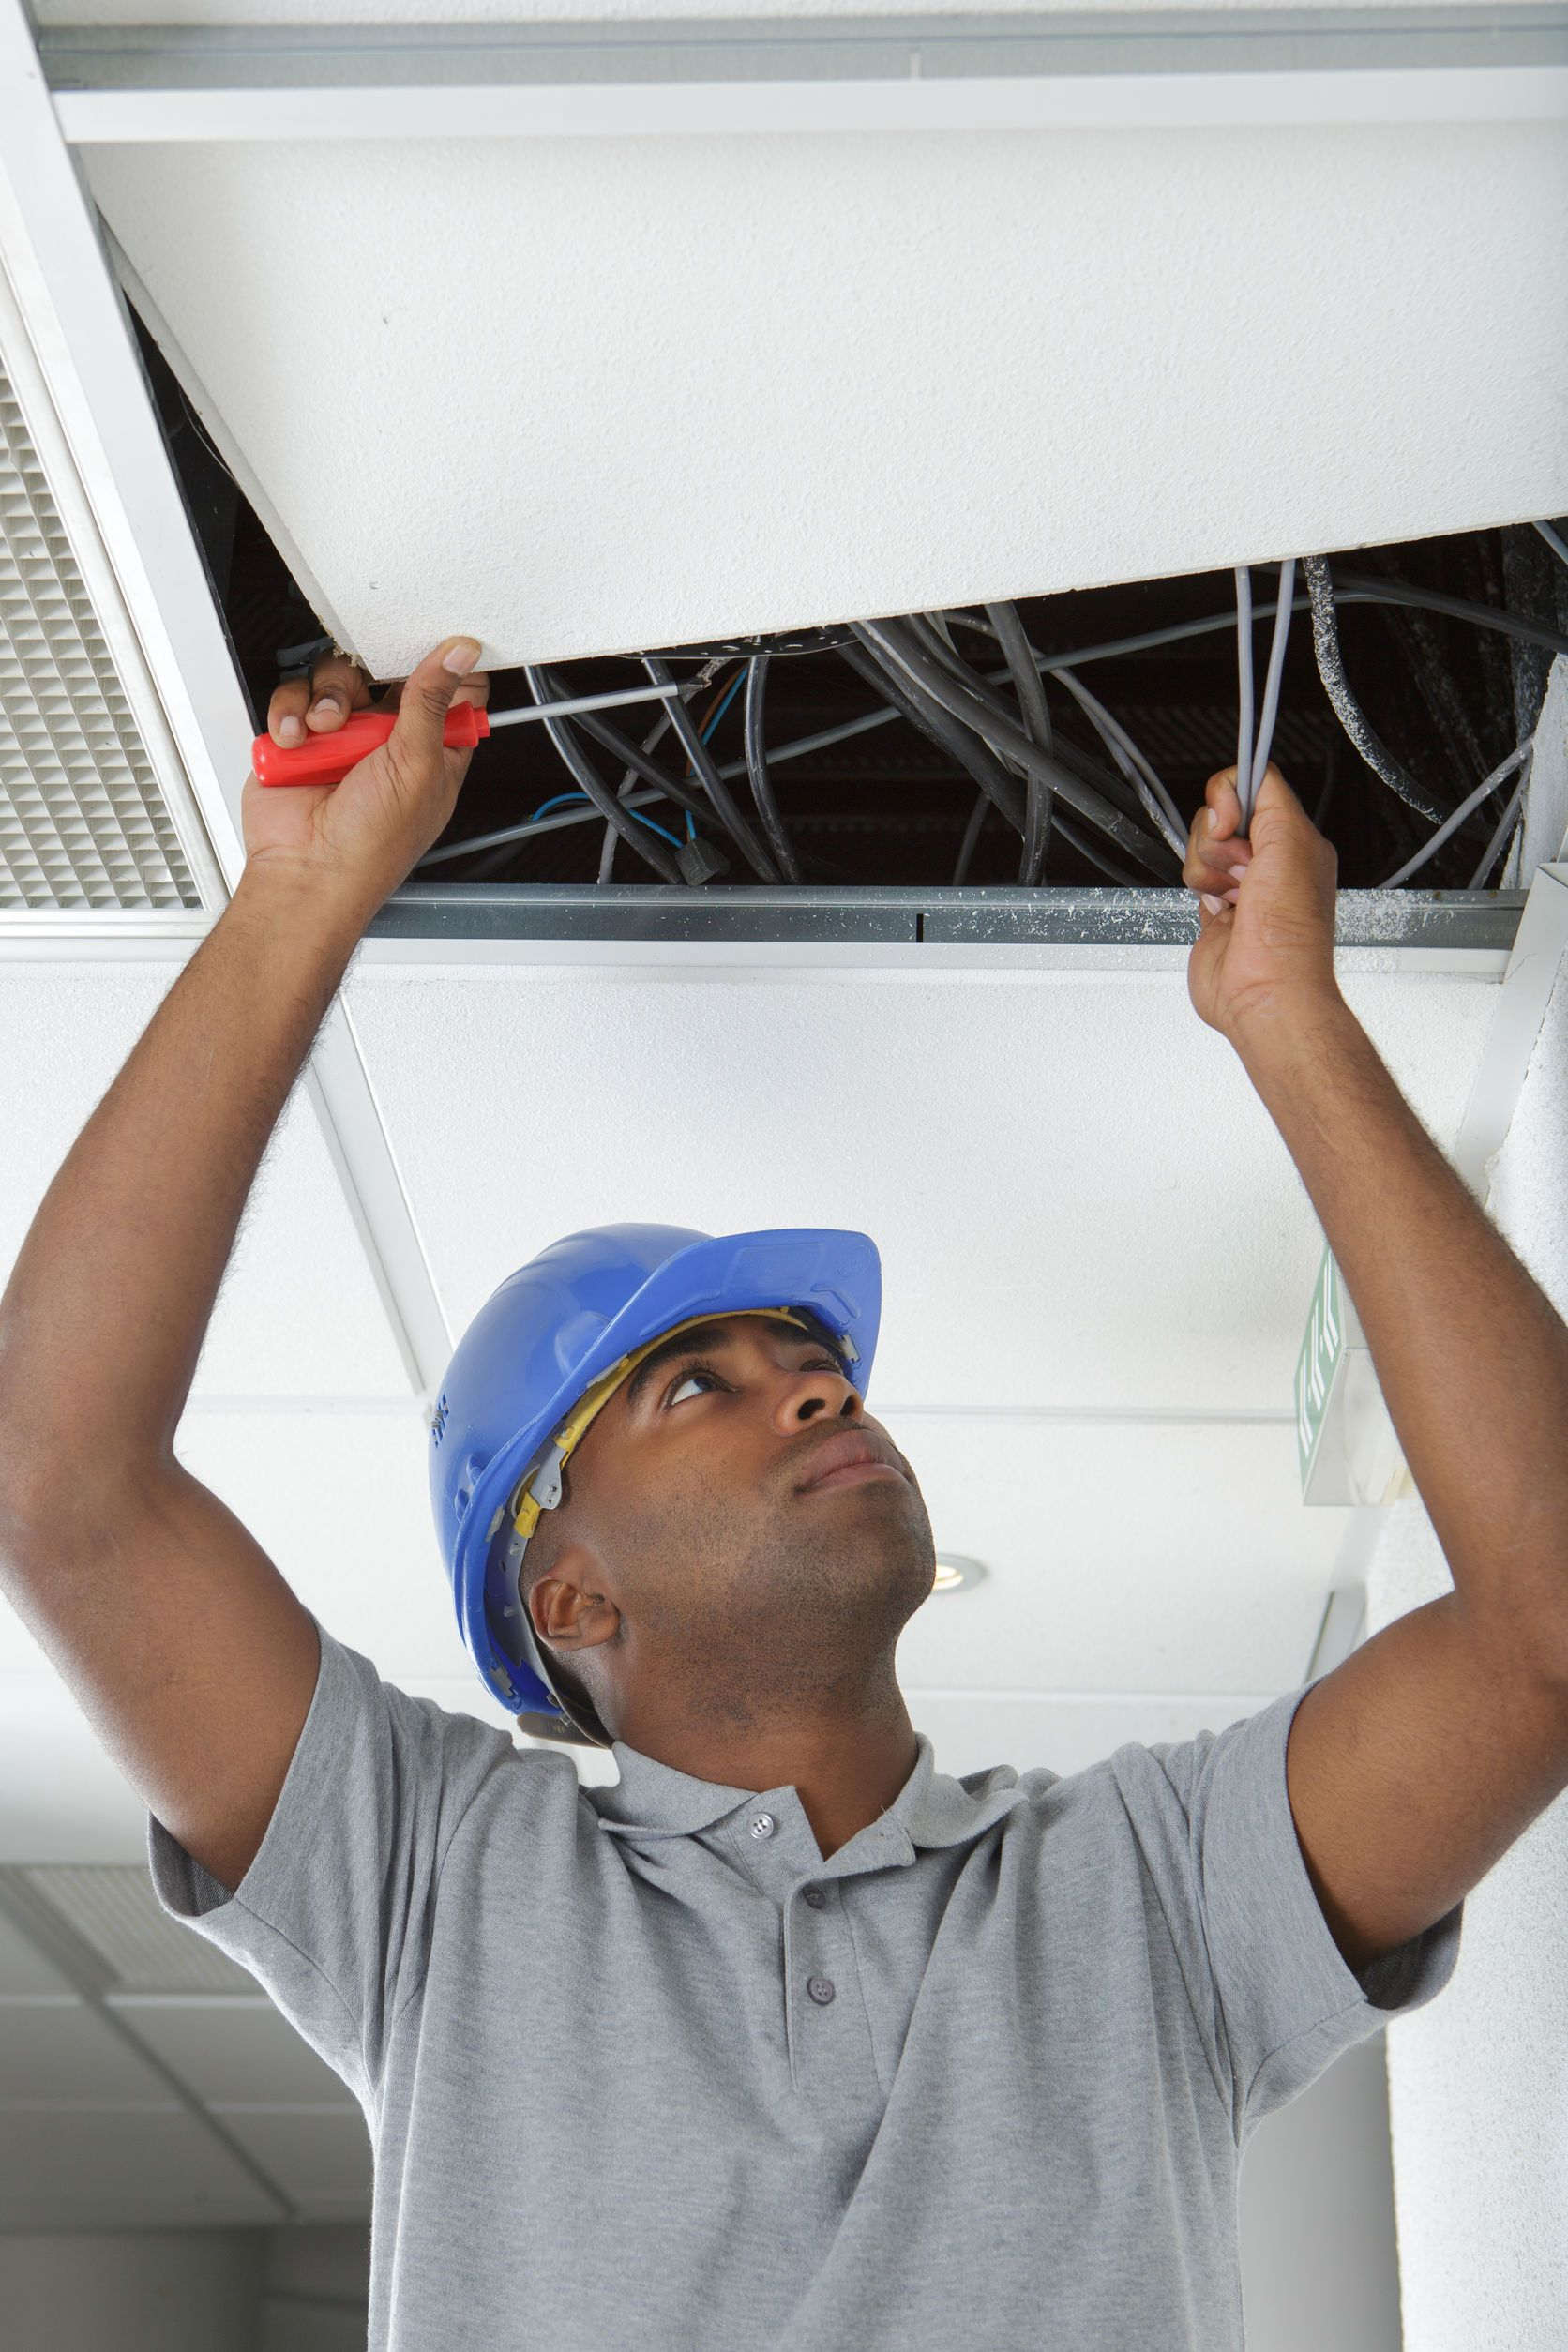 Installing a smoke detector in your home is necessary to